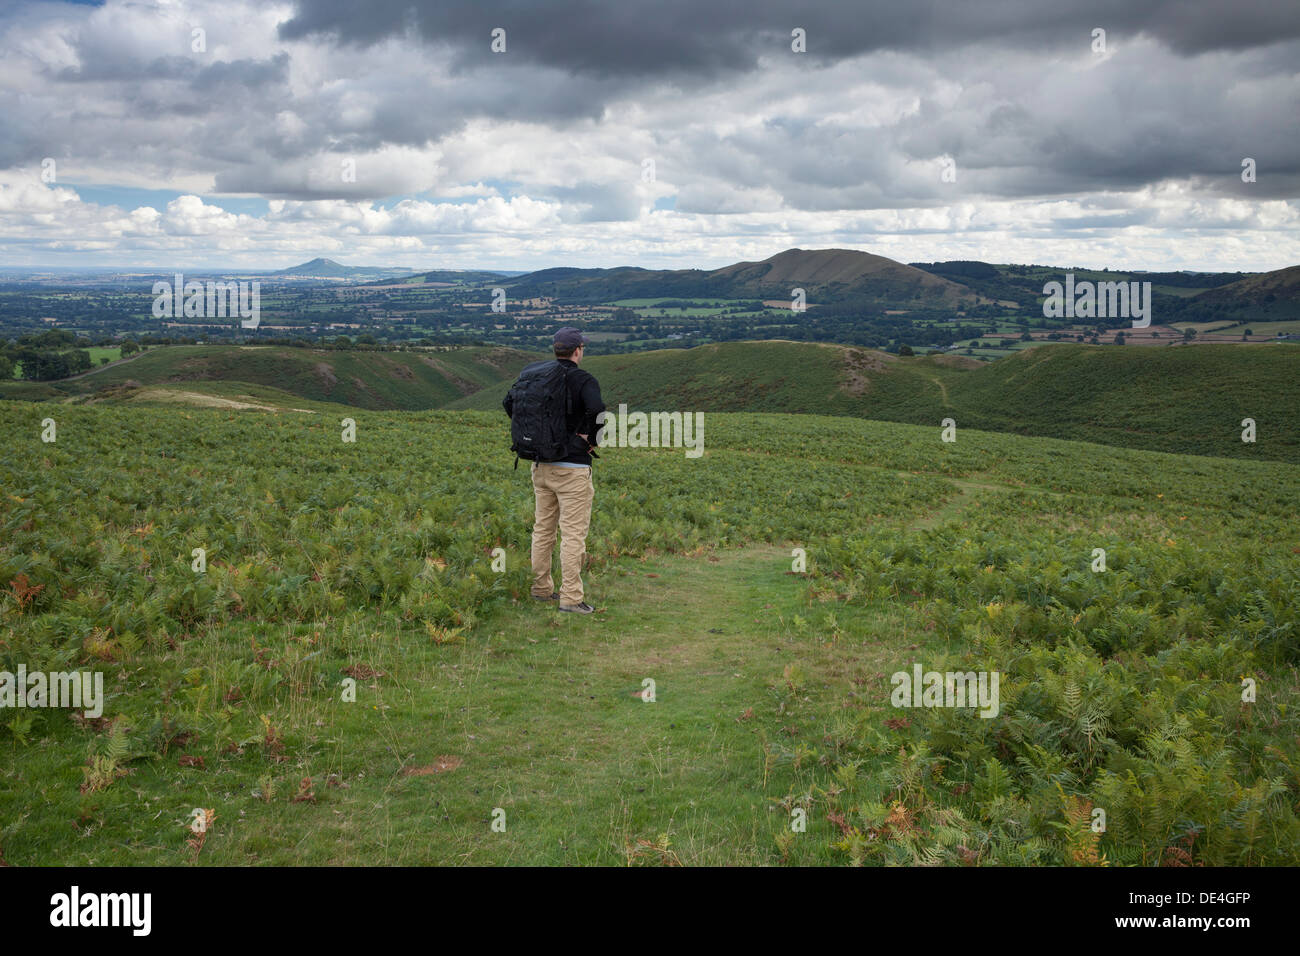 A male walker looking at the Shropshire hills of The Lawley and The Wrekin from The Long Mynd - Stock Image